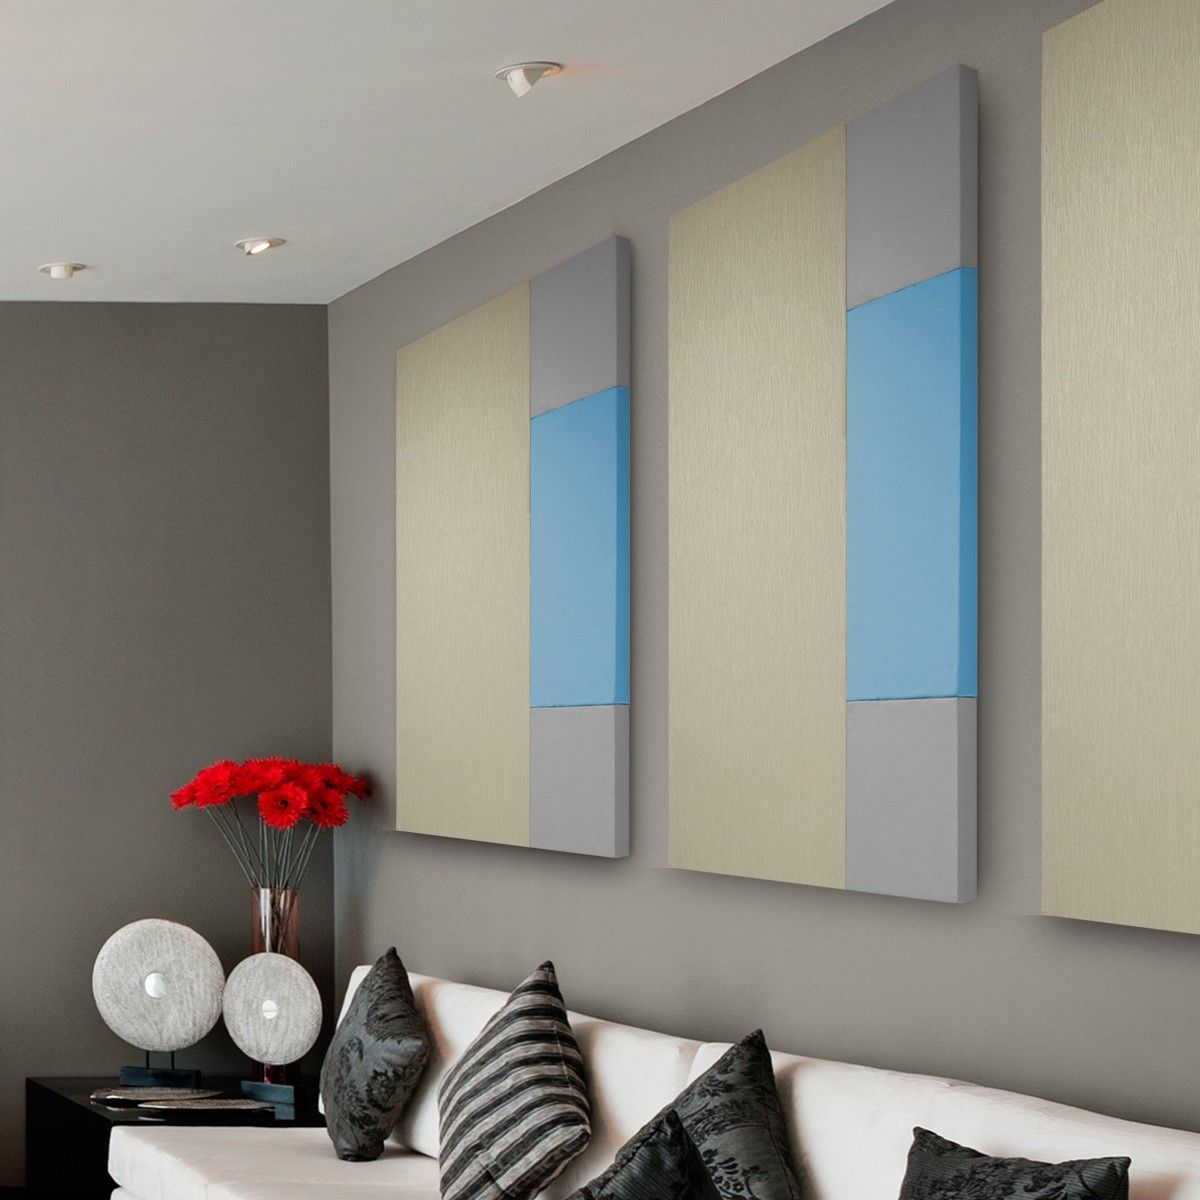 48+ Hanging acoustic panels on wall ideas